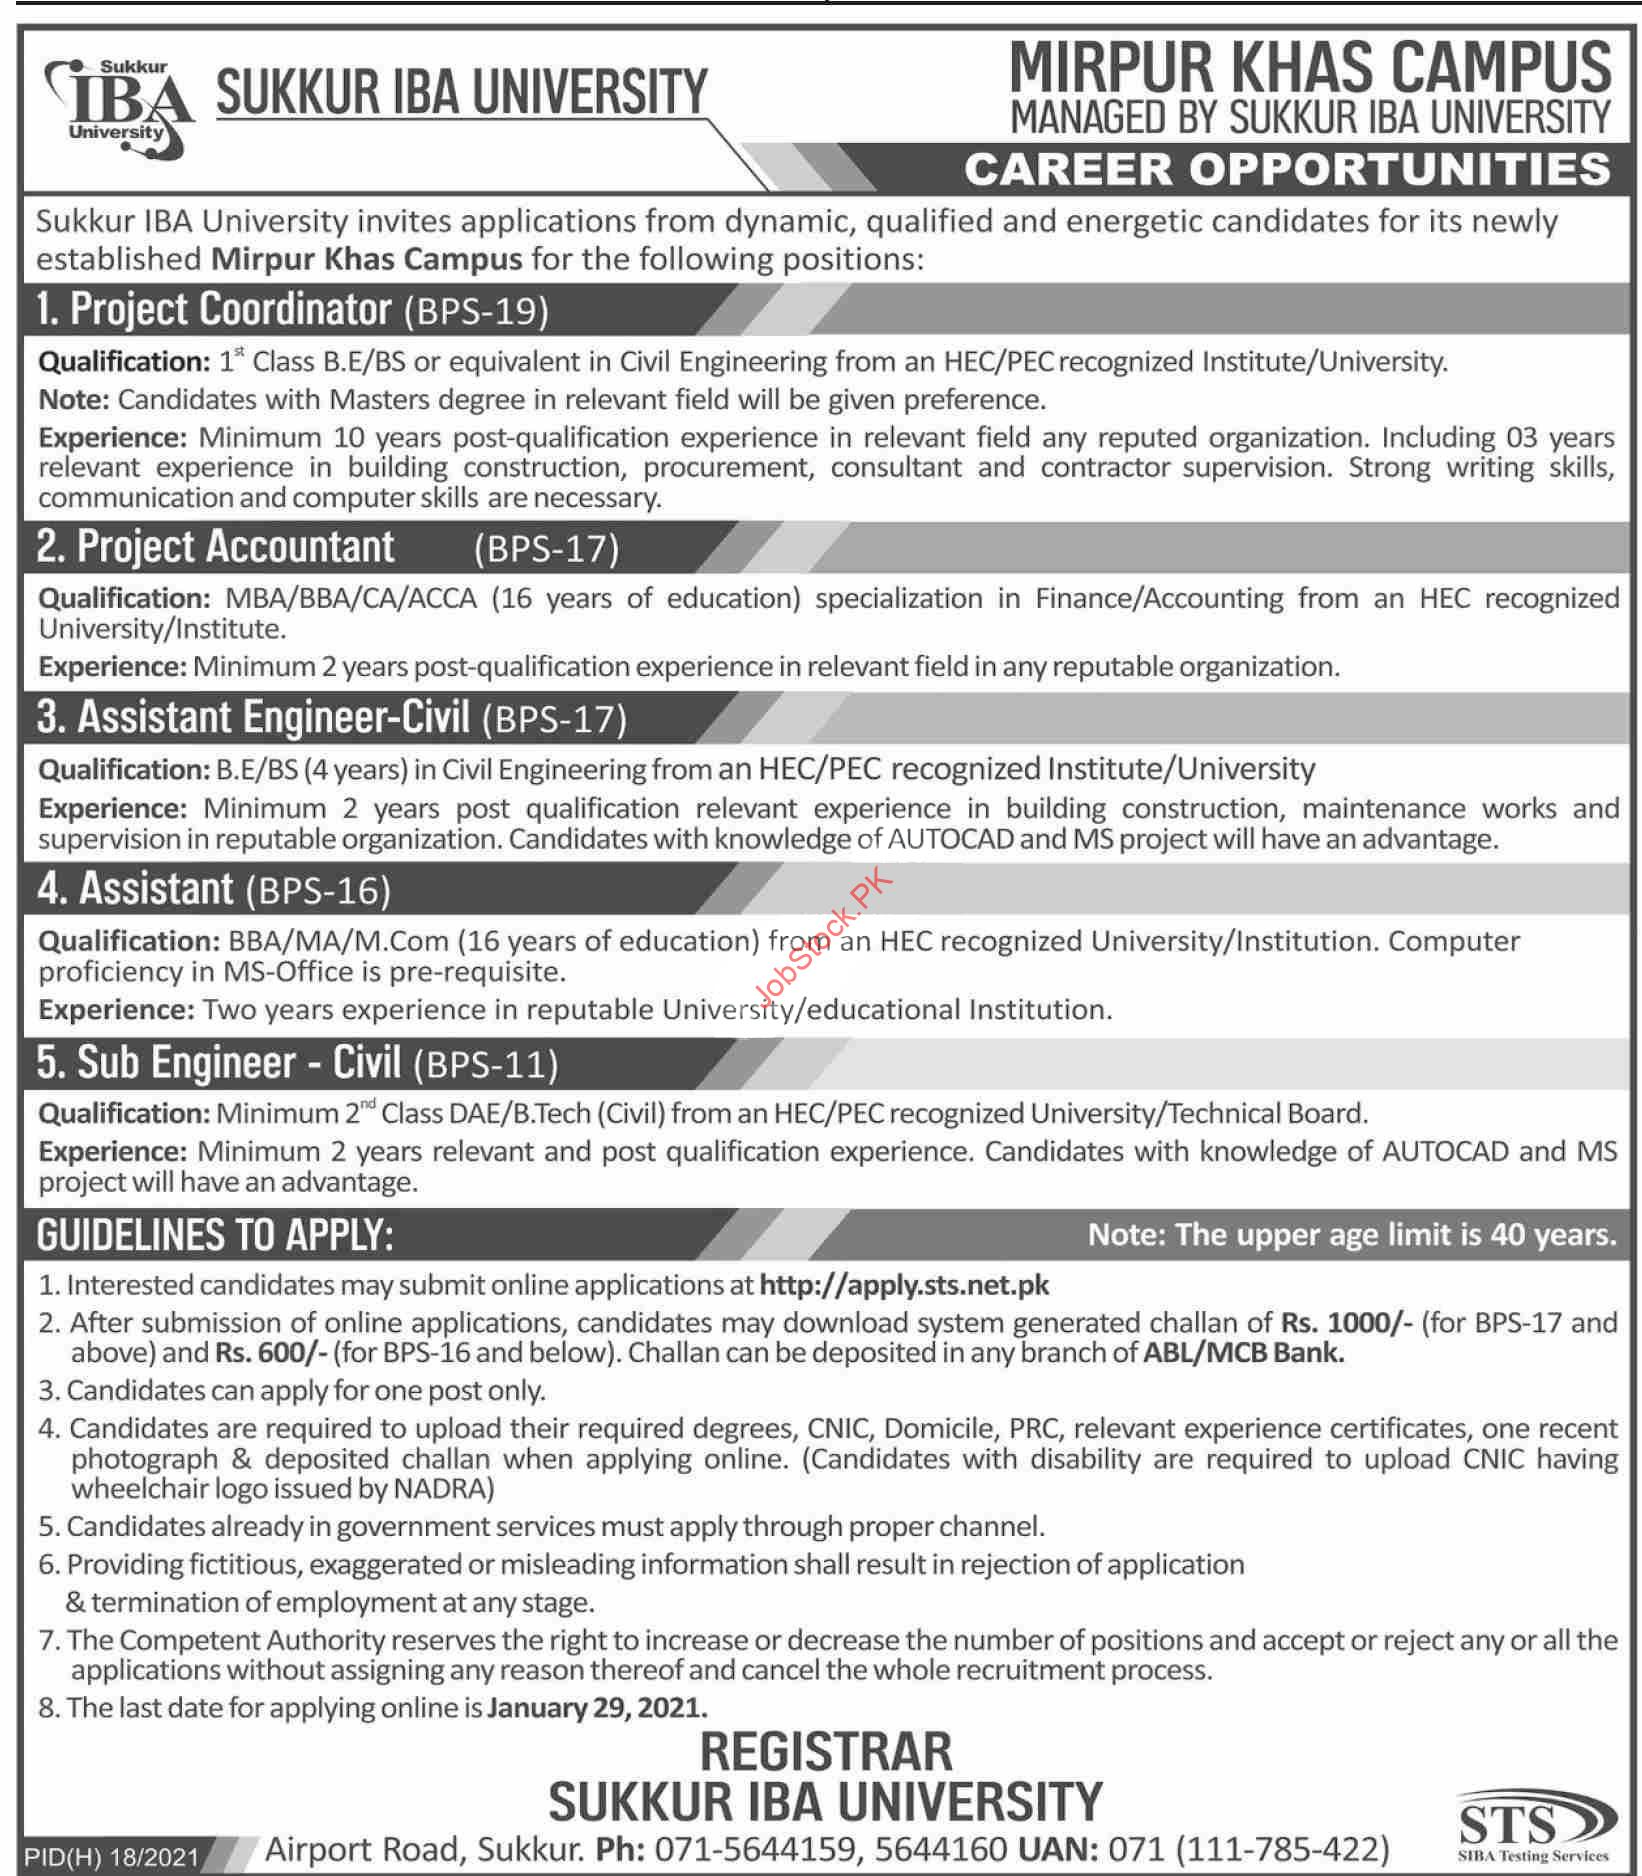 Sukkur Iba University Mirpur Khas Campus Jobs 2021